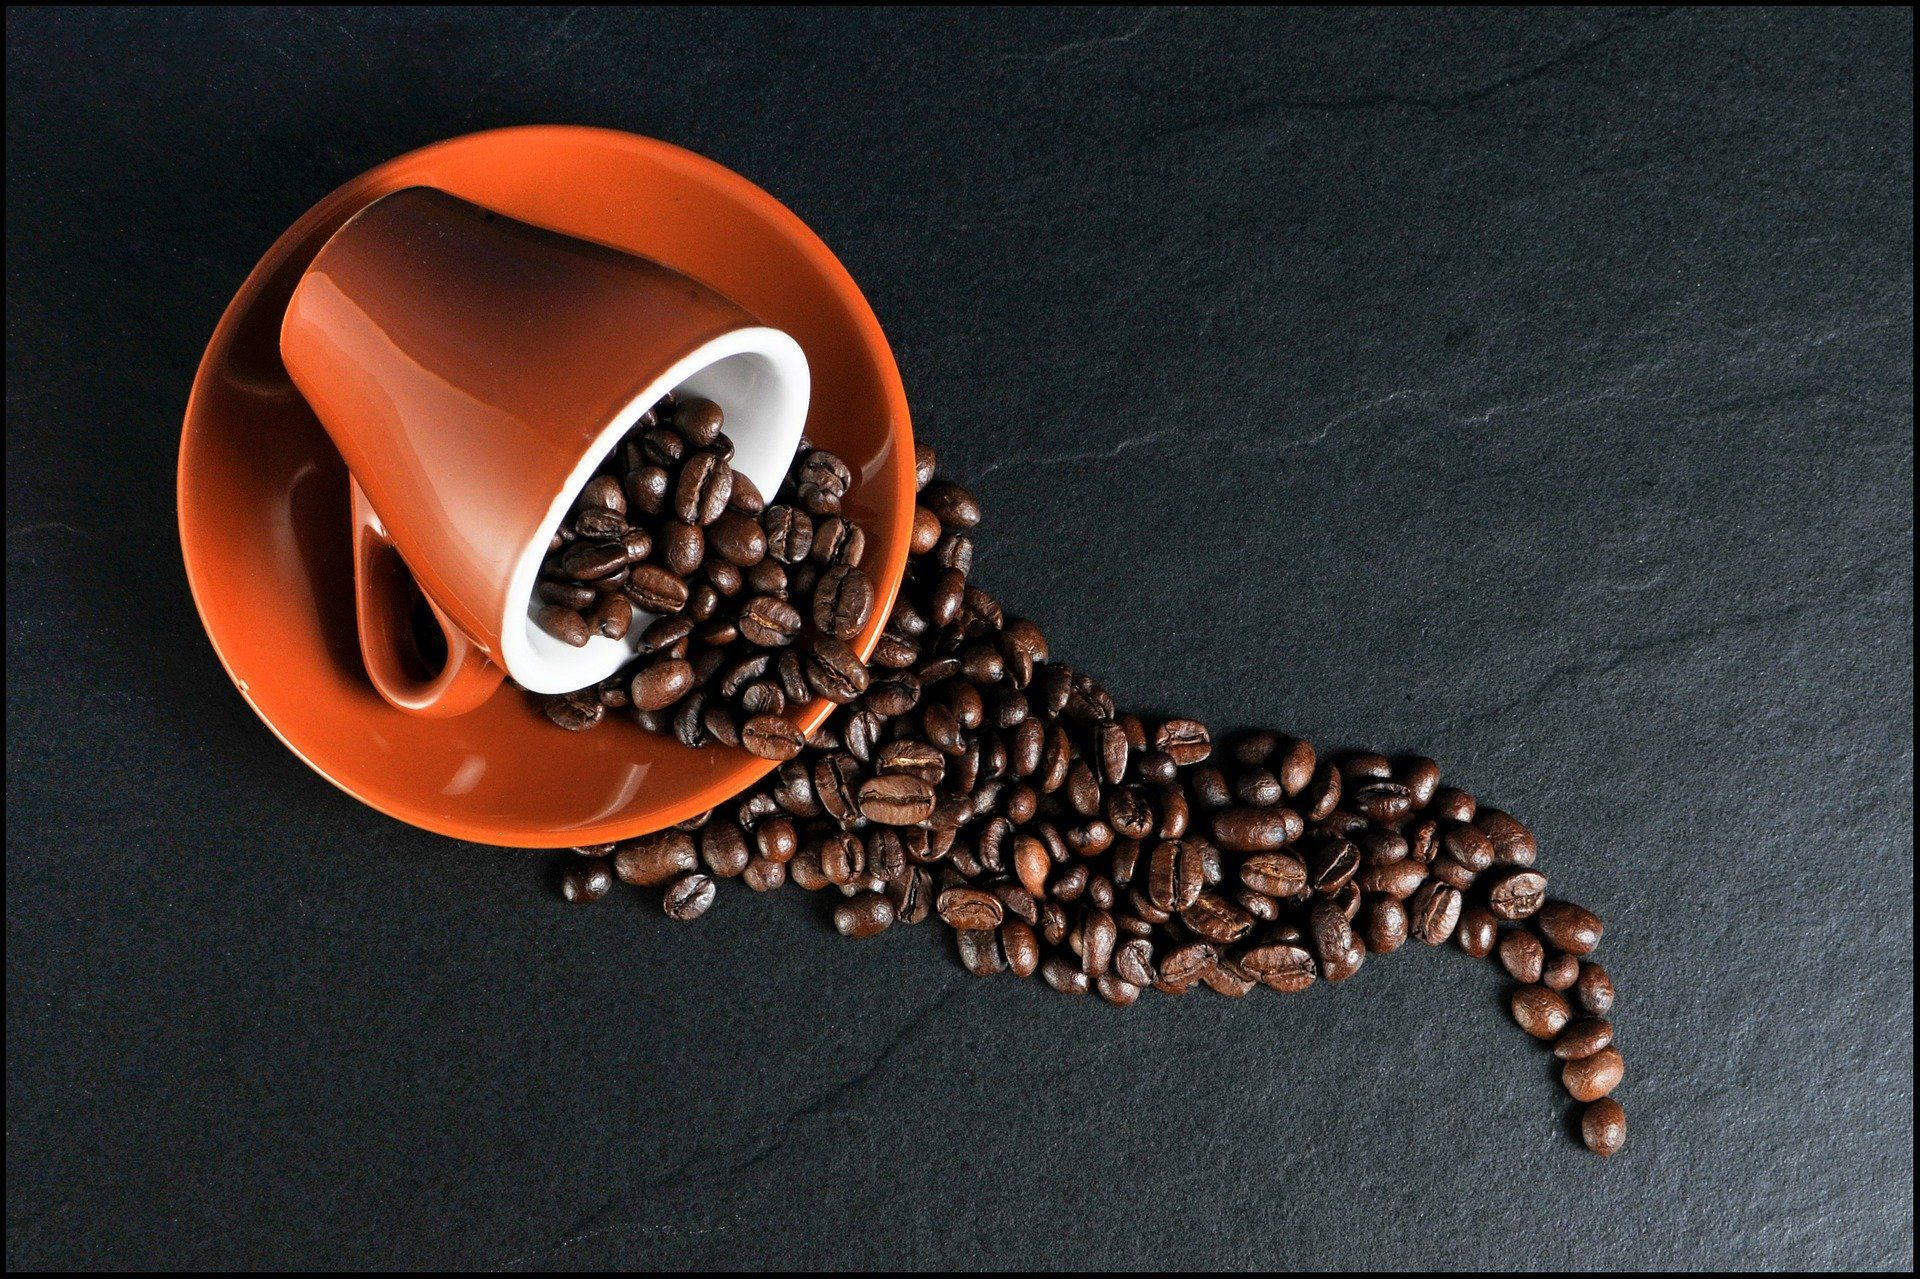 A spilled cup filled with coffee beans